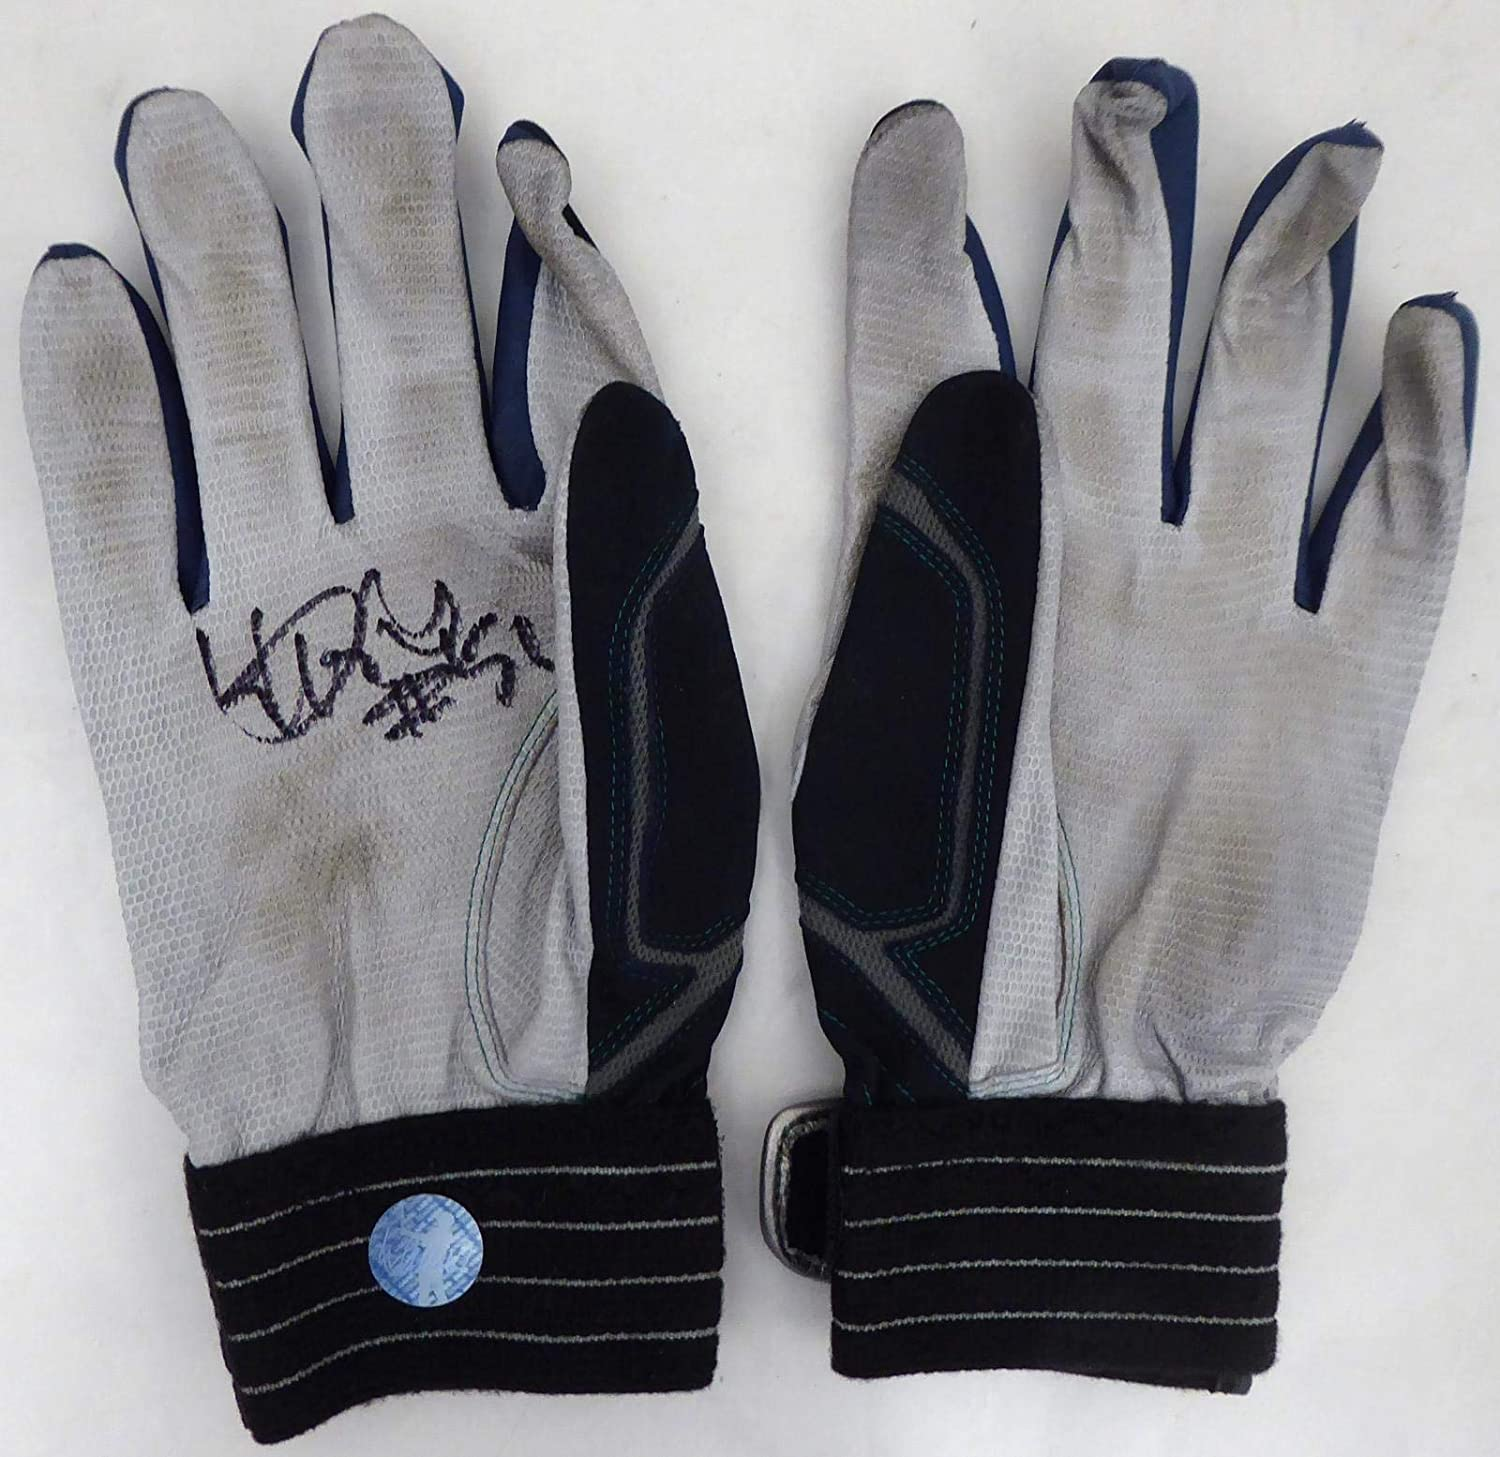 Ichiro Suzuki Autographed 2018 Game Used Batting Gloves with Signed Certificate Seattle Mariners